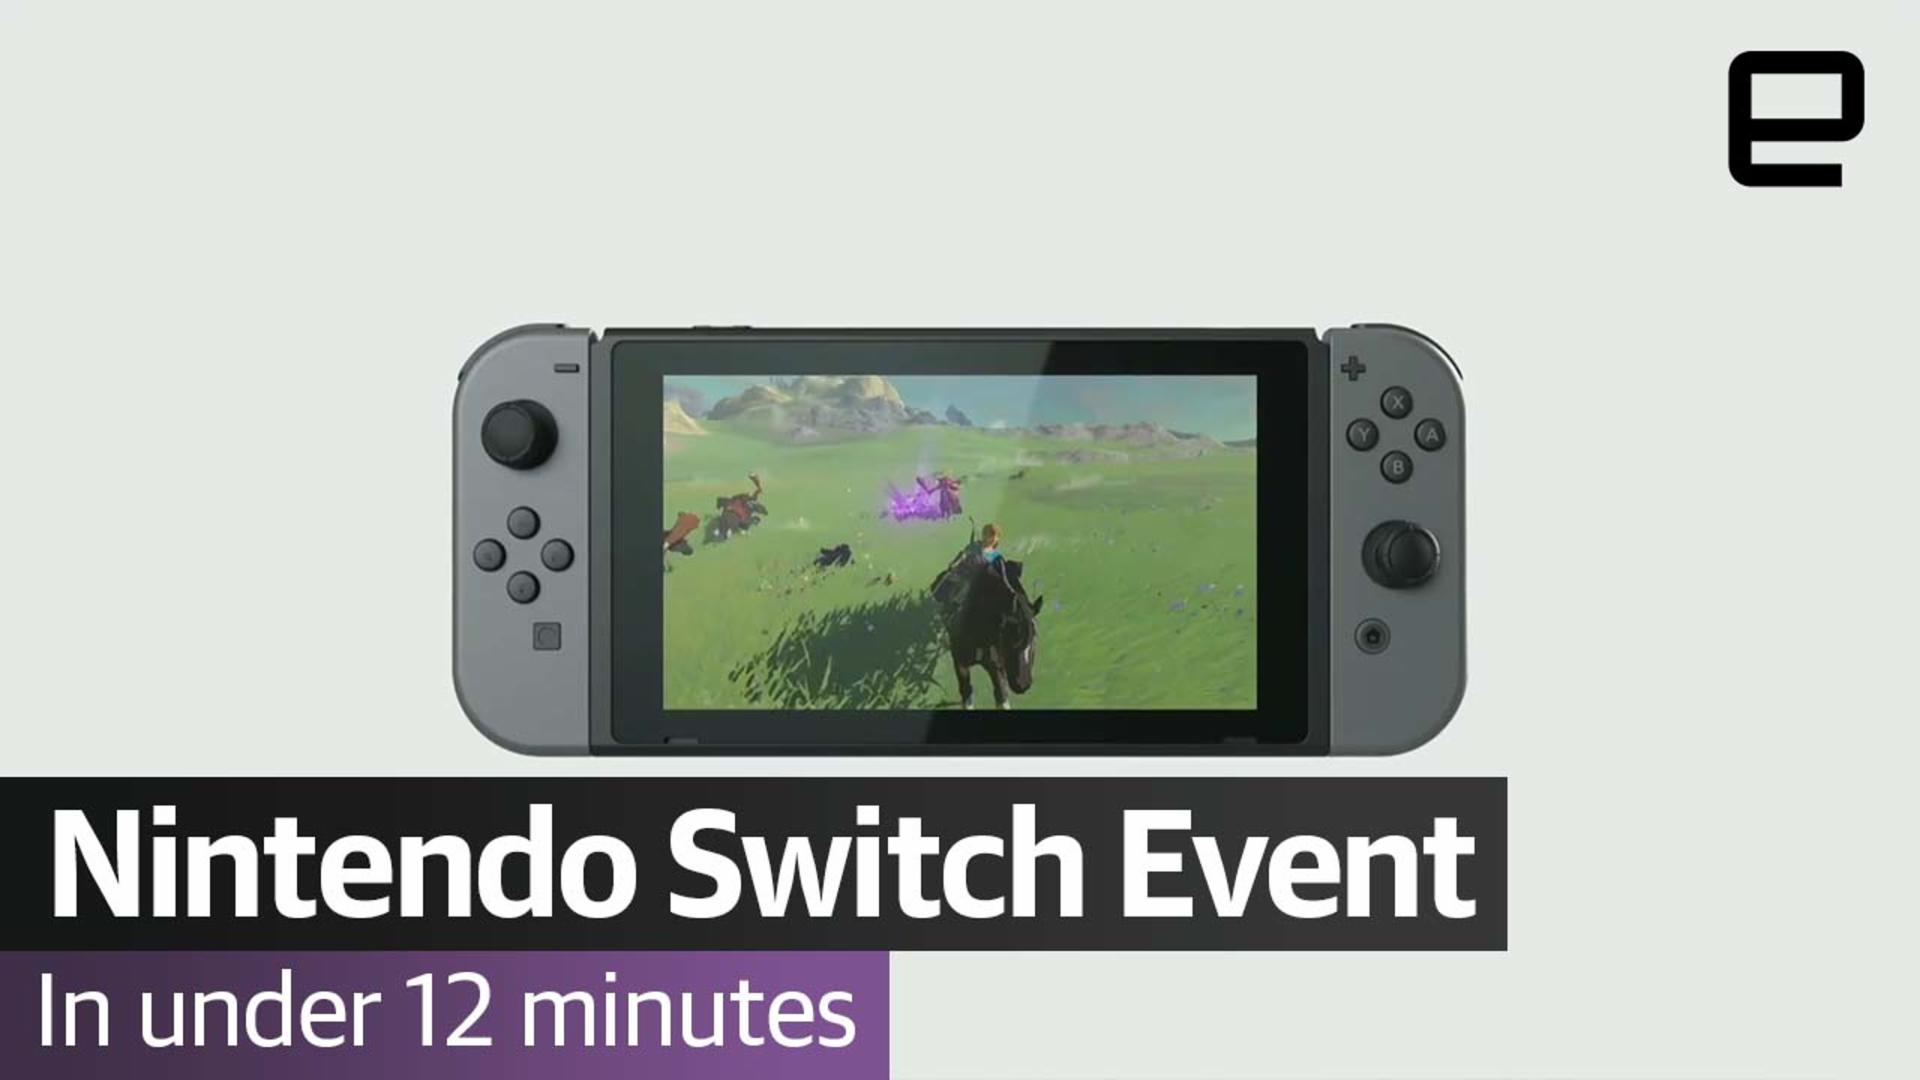 Watch the Nintendo Switch event in less than 12 minutes